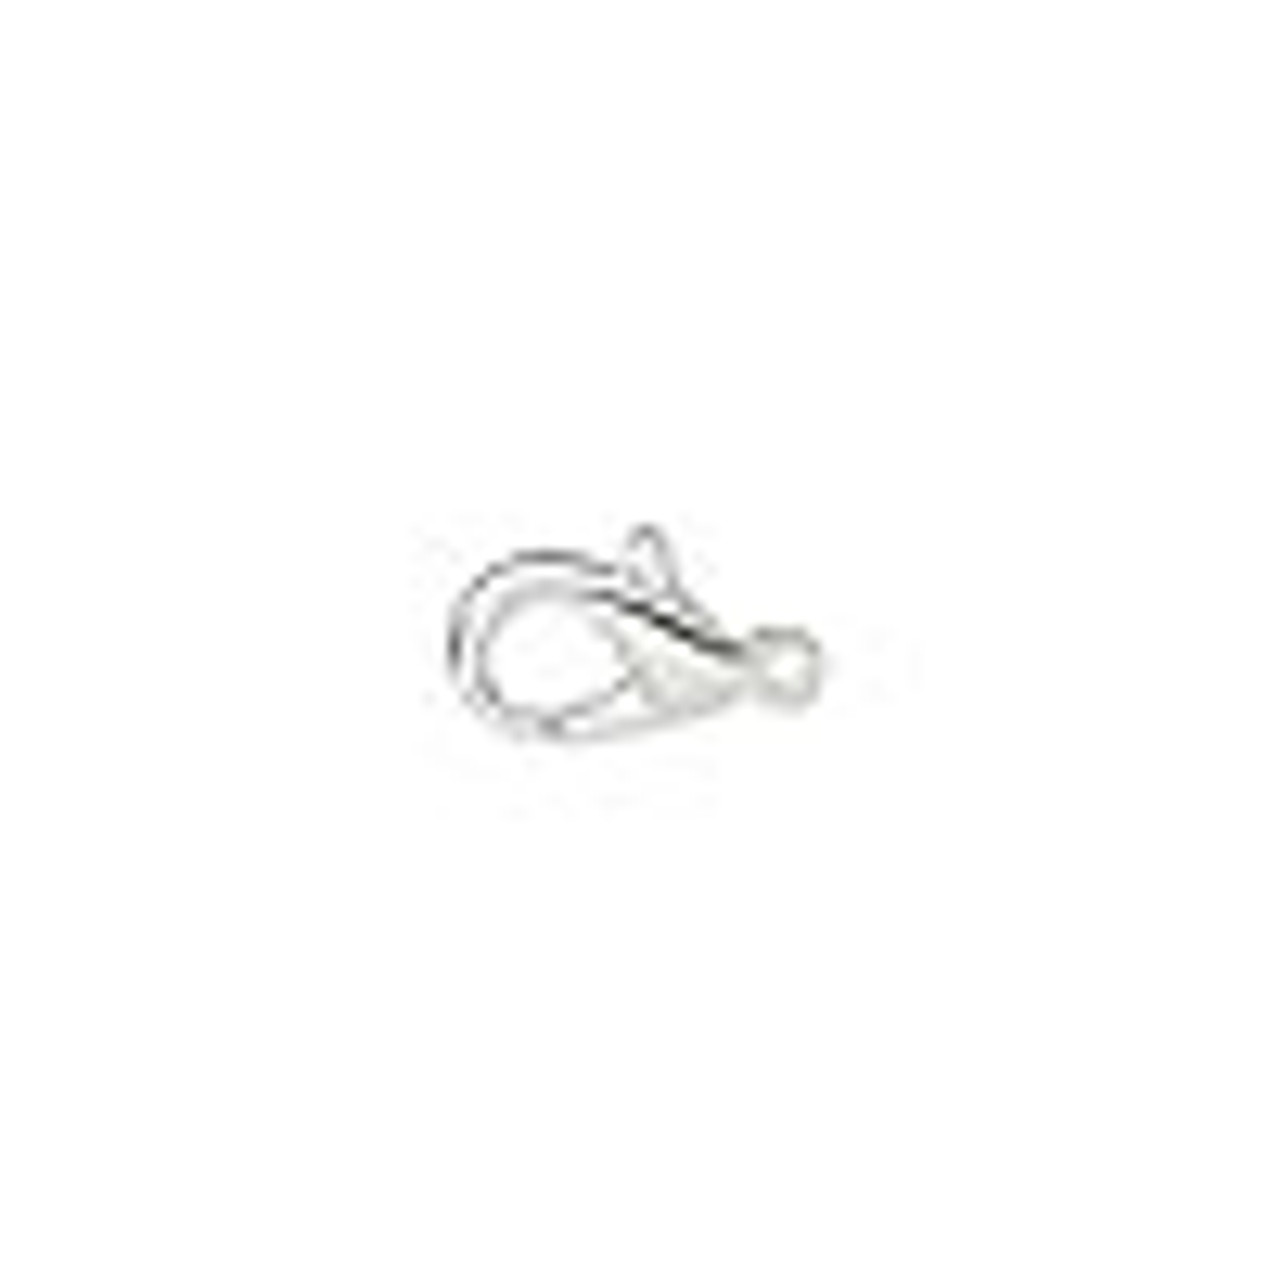 10x6mm Silver Plated Lobster Claw (6 Ct.)